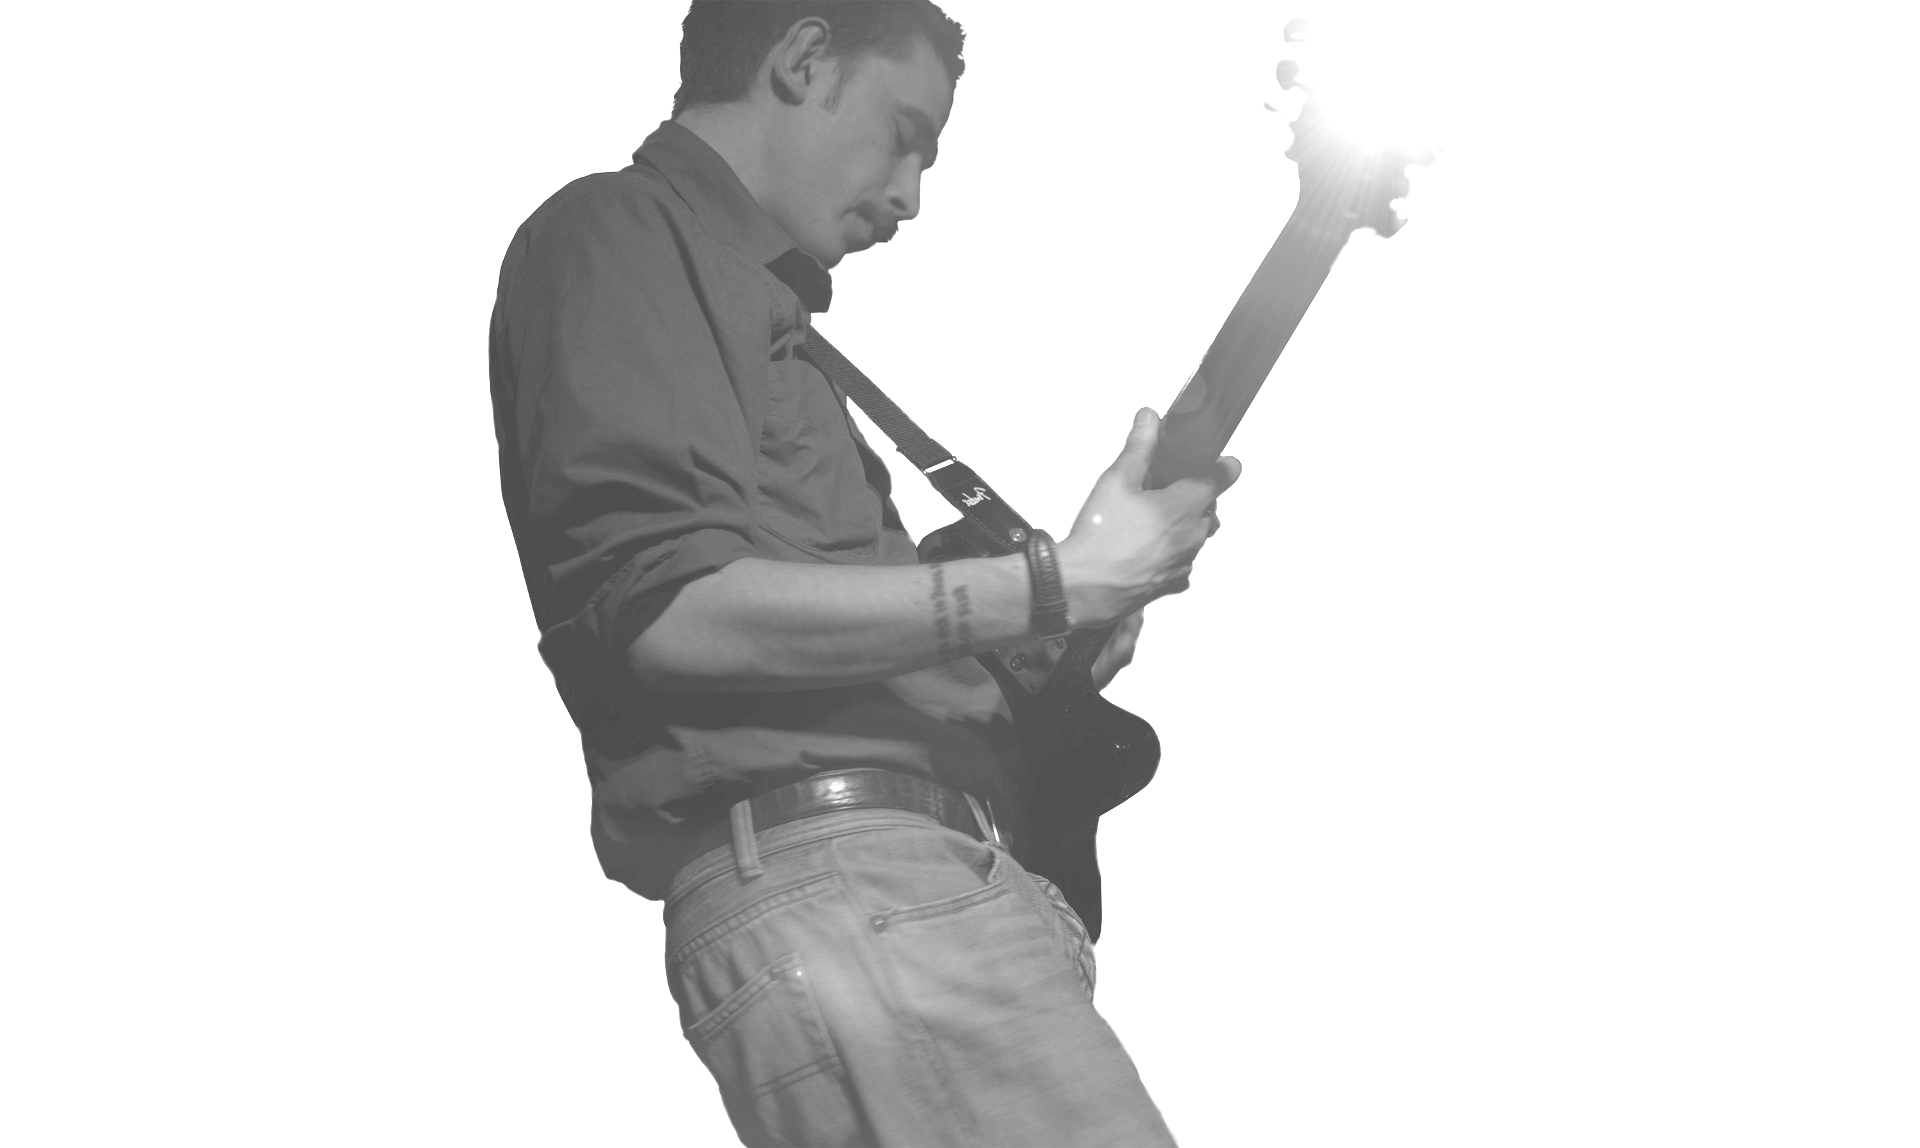 Sytlish black and white photo of musician/composer Marc Wencelius playing the electric guitar. Photo credited to Musicos Productions. Design by Musicos Productions